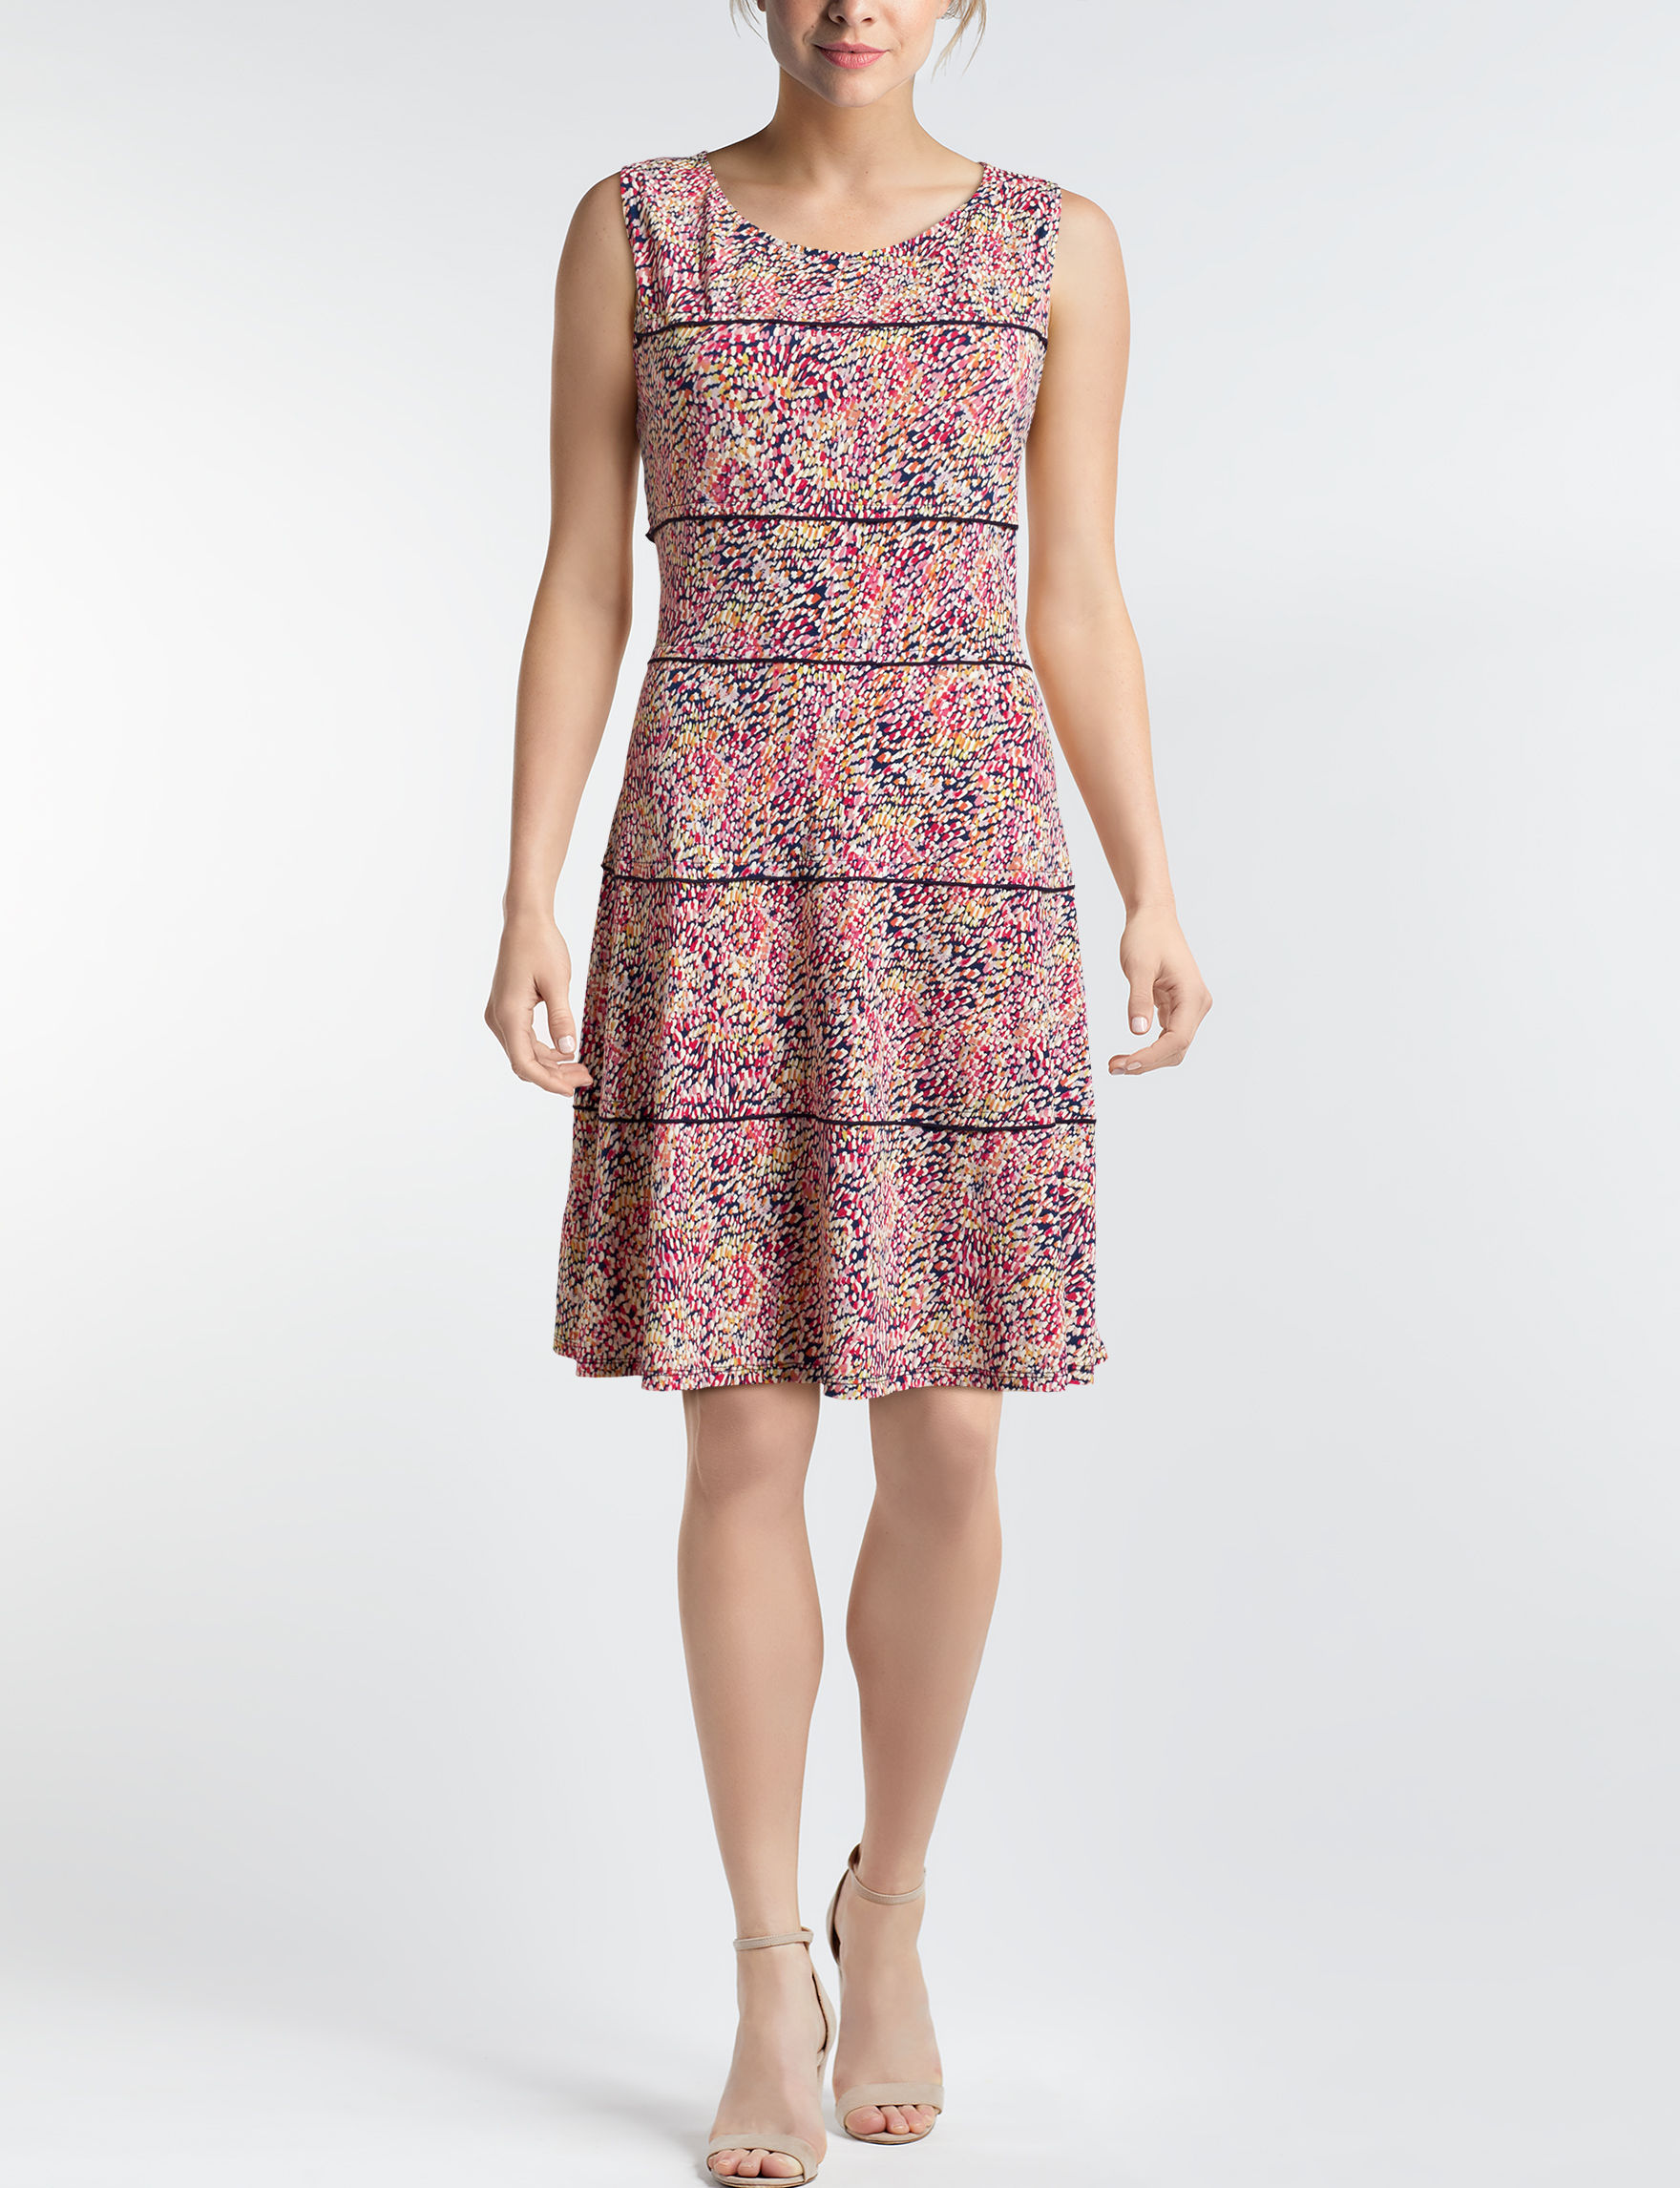 Perceptions Pink Everyday & Casual A-line Dresses Fit & Flare Dresses